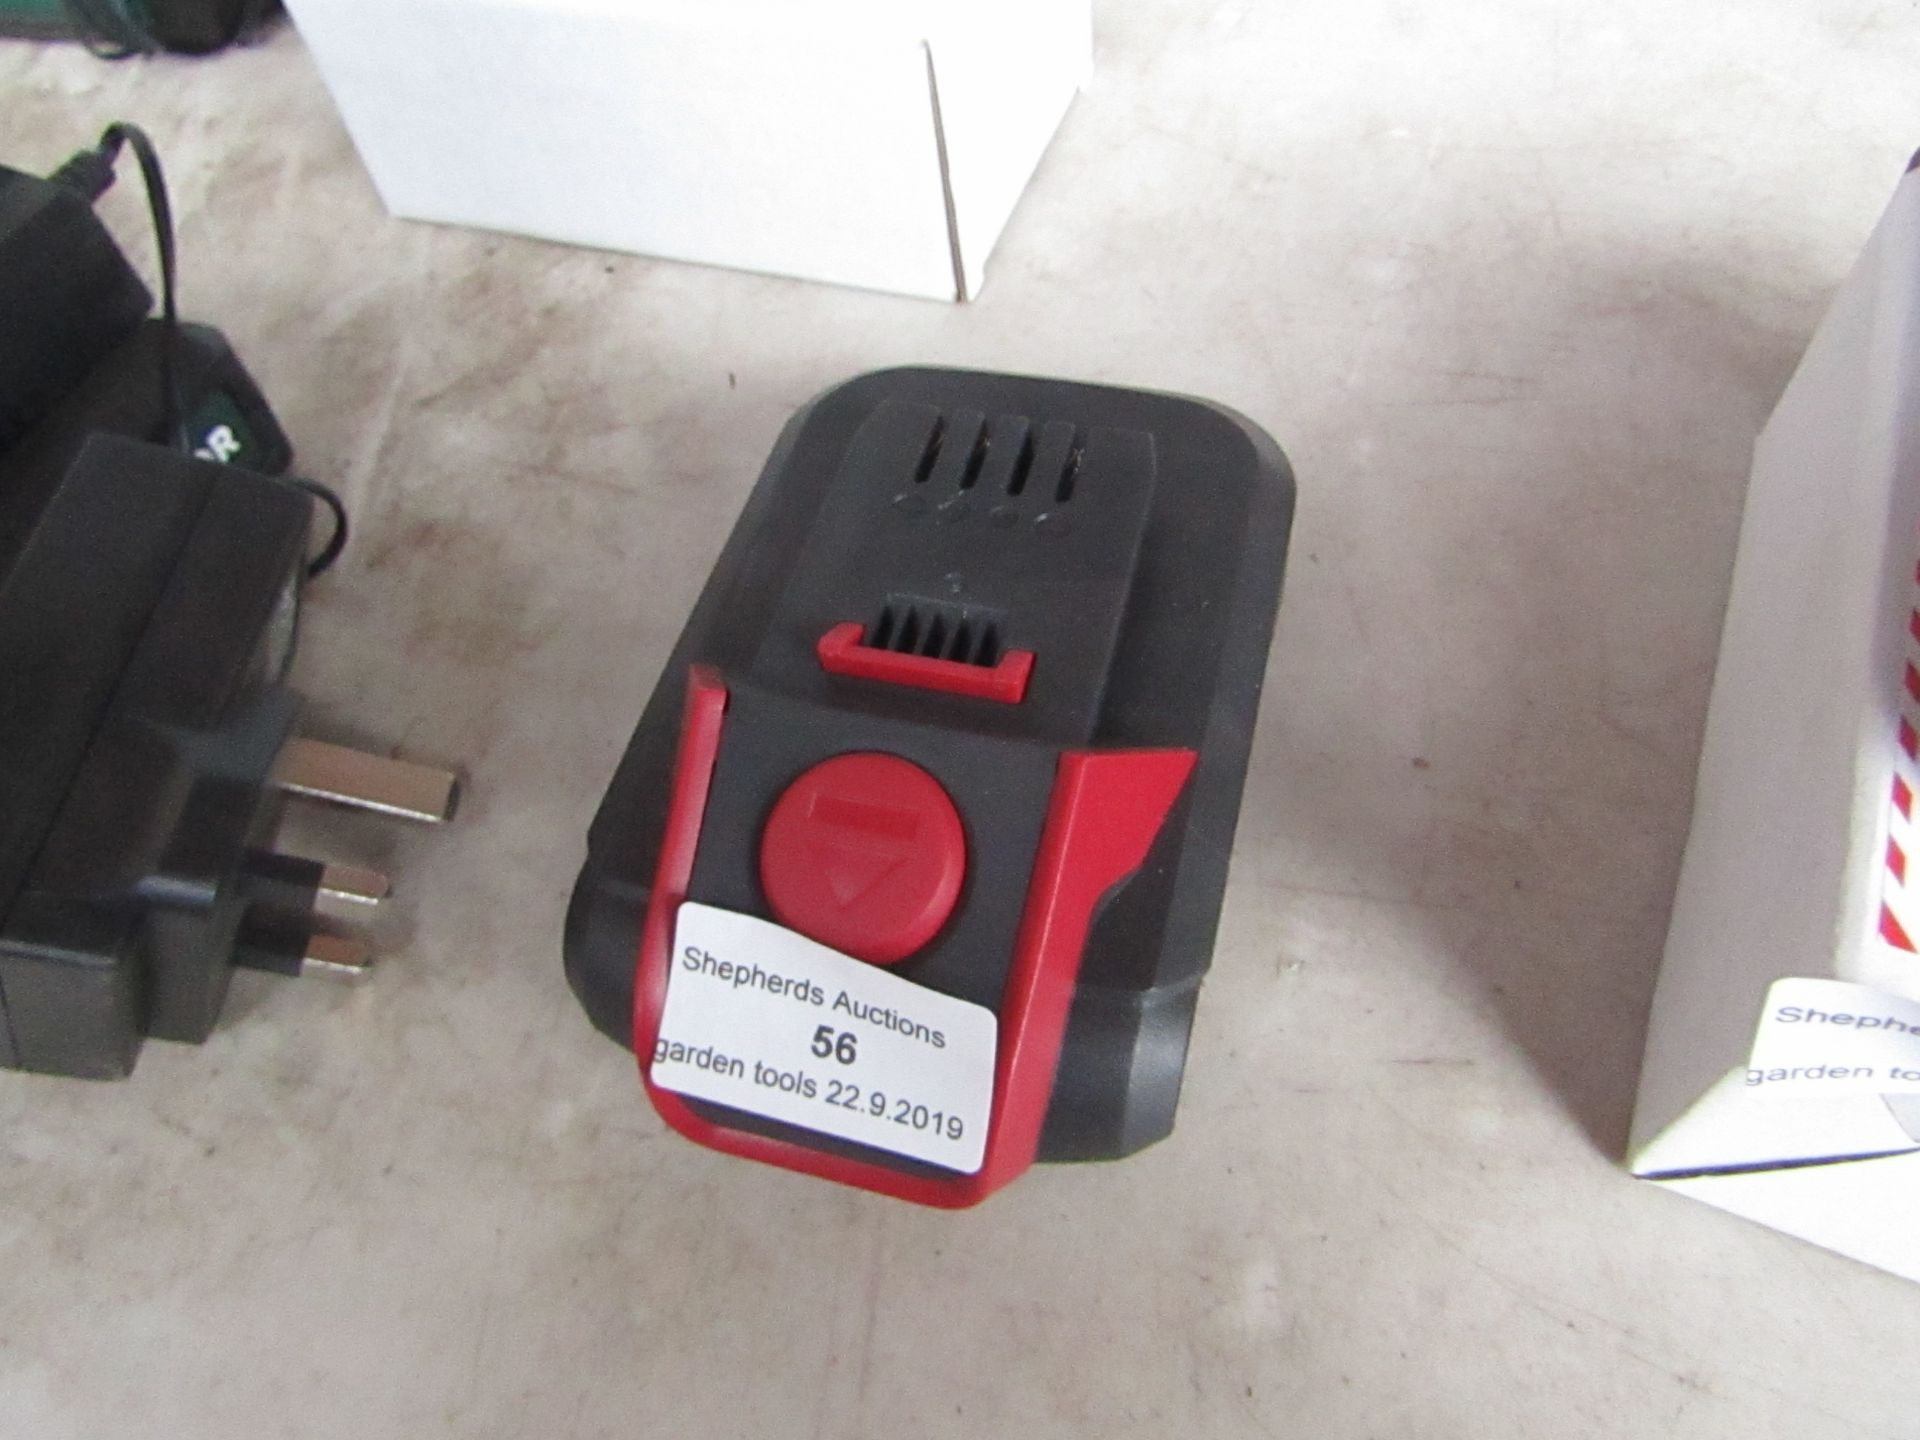 Lotto 56 - Spear and Jackson 18V Battery, tested working when attached to a Power tool.